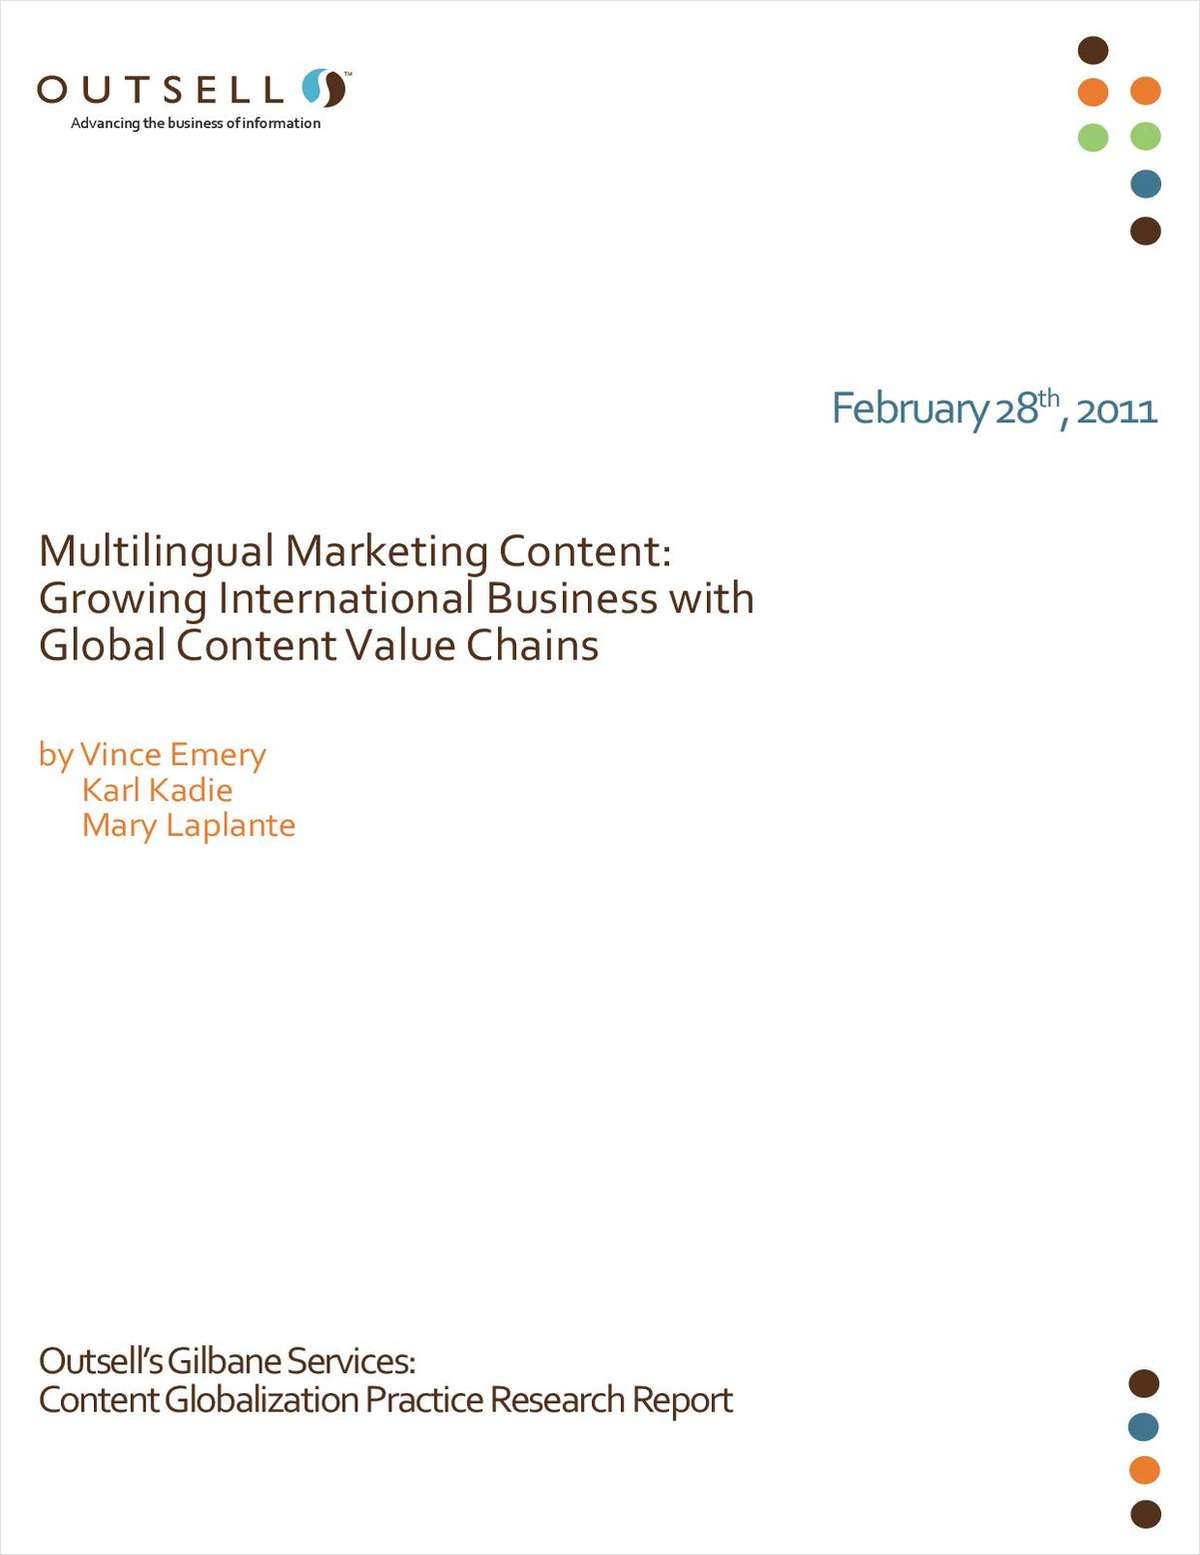 Multilingual Marketing Content: Growing International Business with Global Content Value Chains